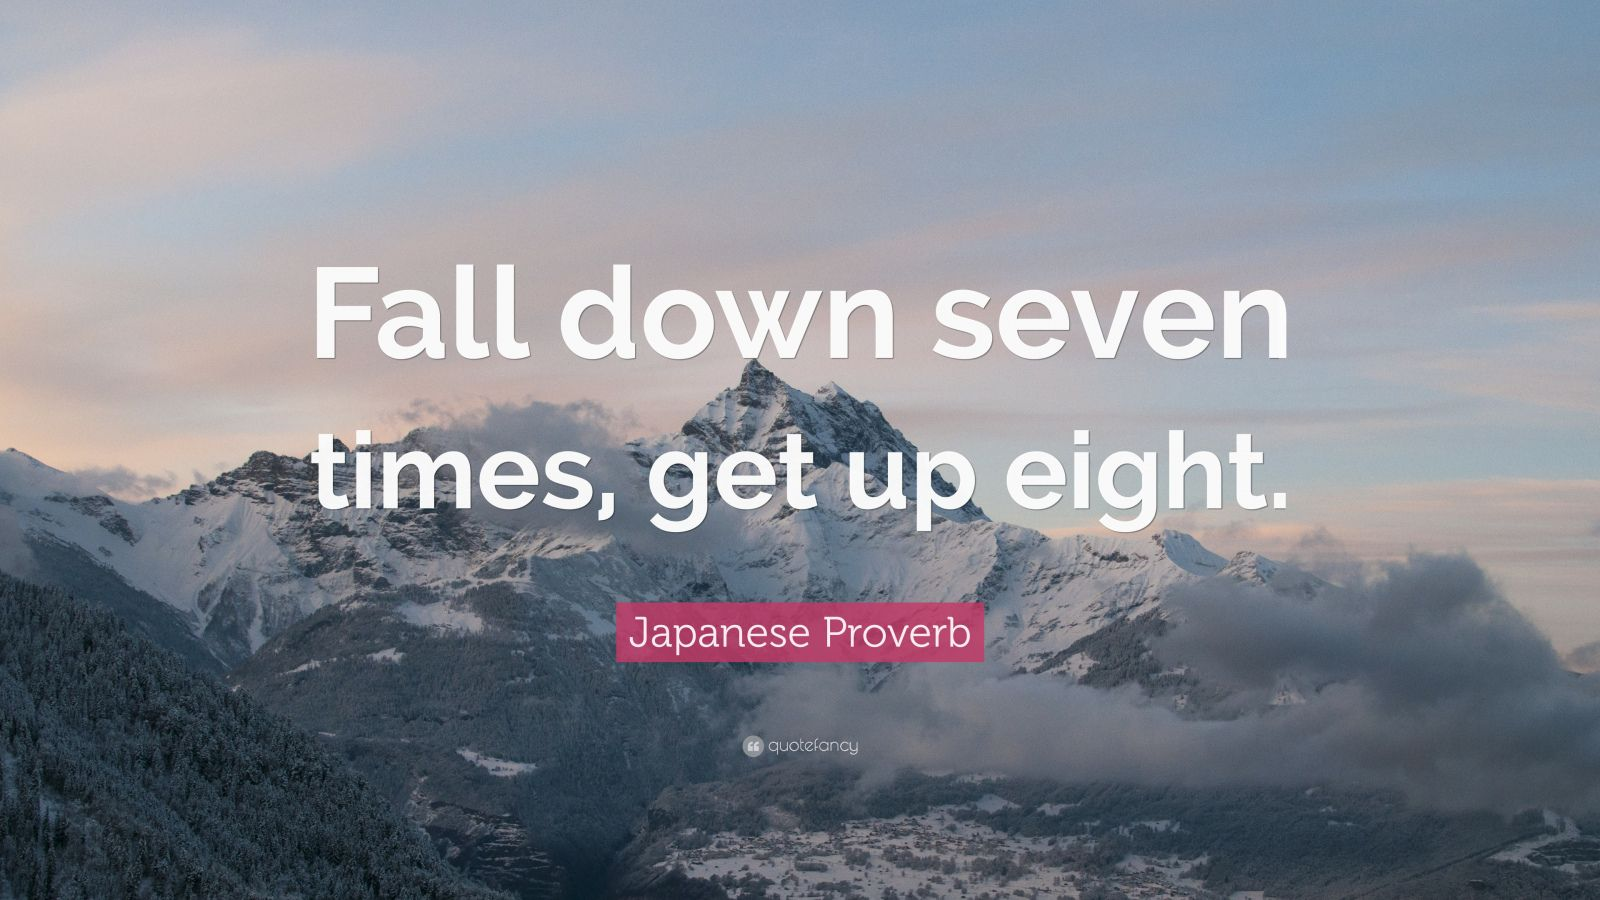 Hd Night Sky With Motivational Quotes Wallpaper For Desktop Japanese Proverb Quote Fall Down Seven Times Get Up